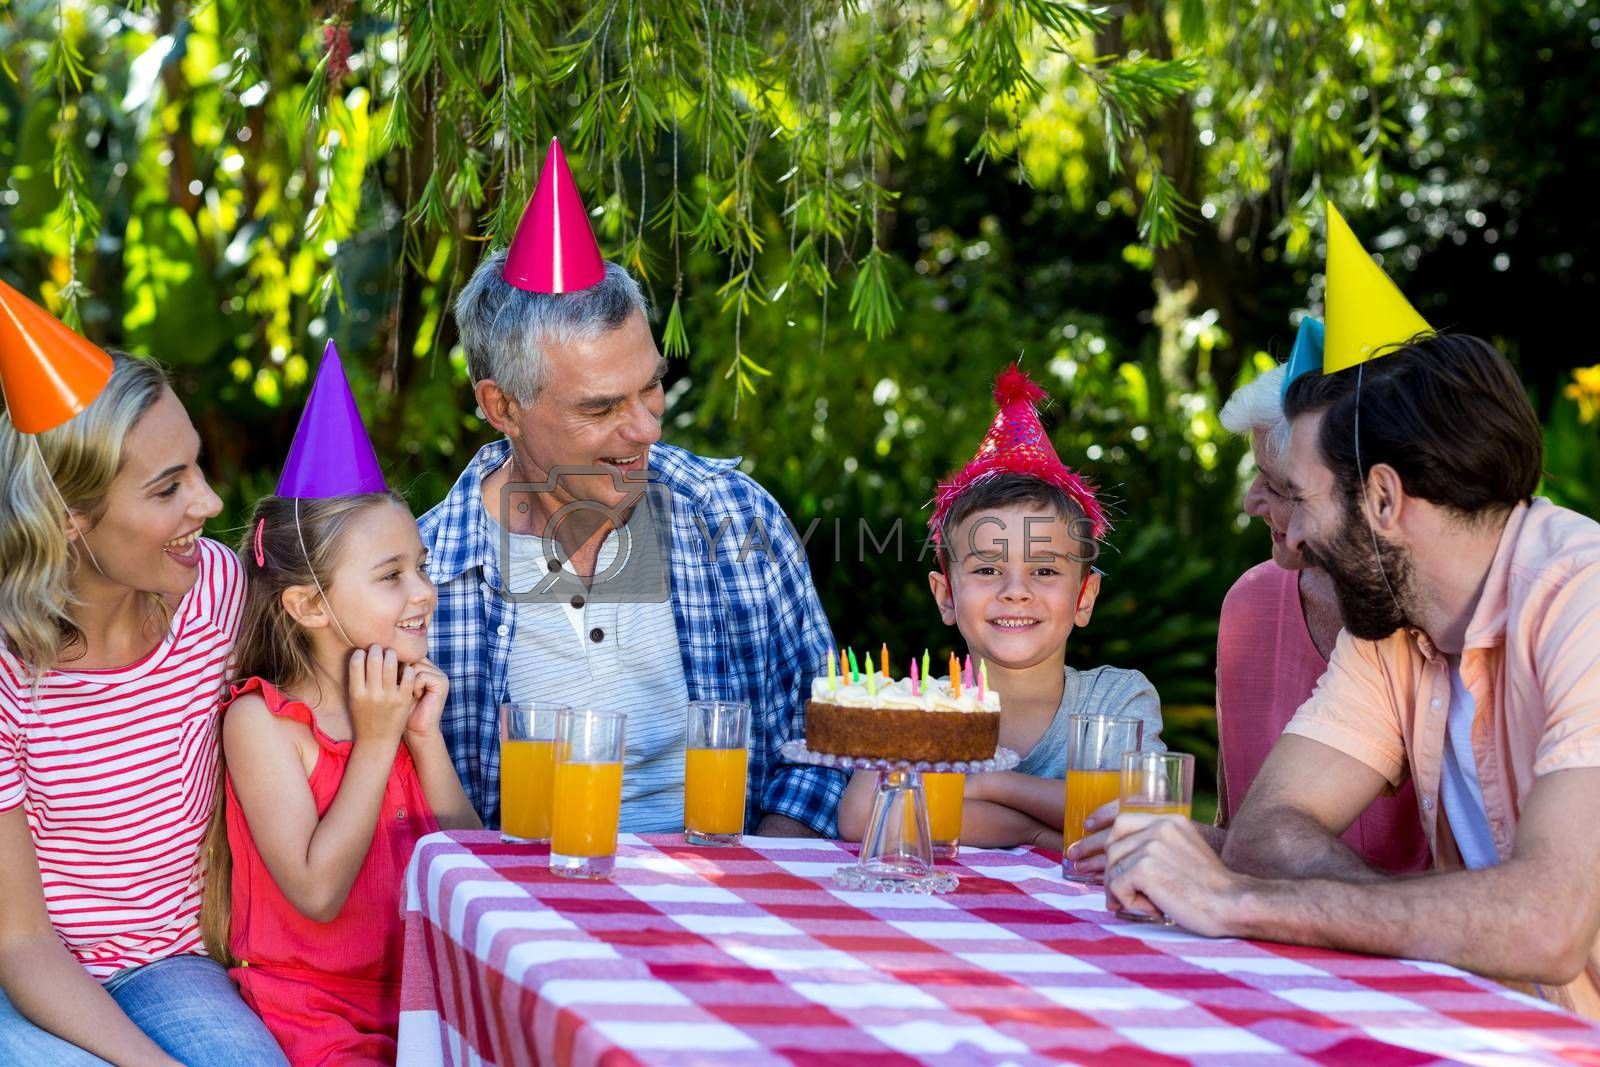 Smiling family looking at birthday boy during celebration in yard